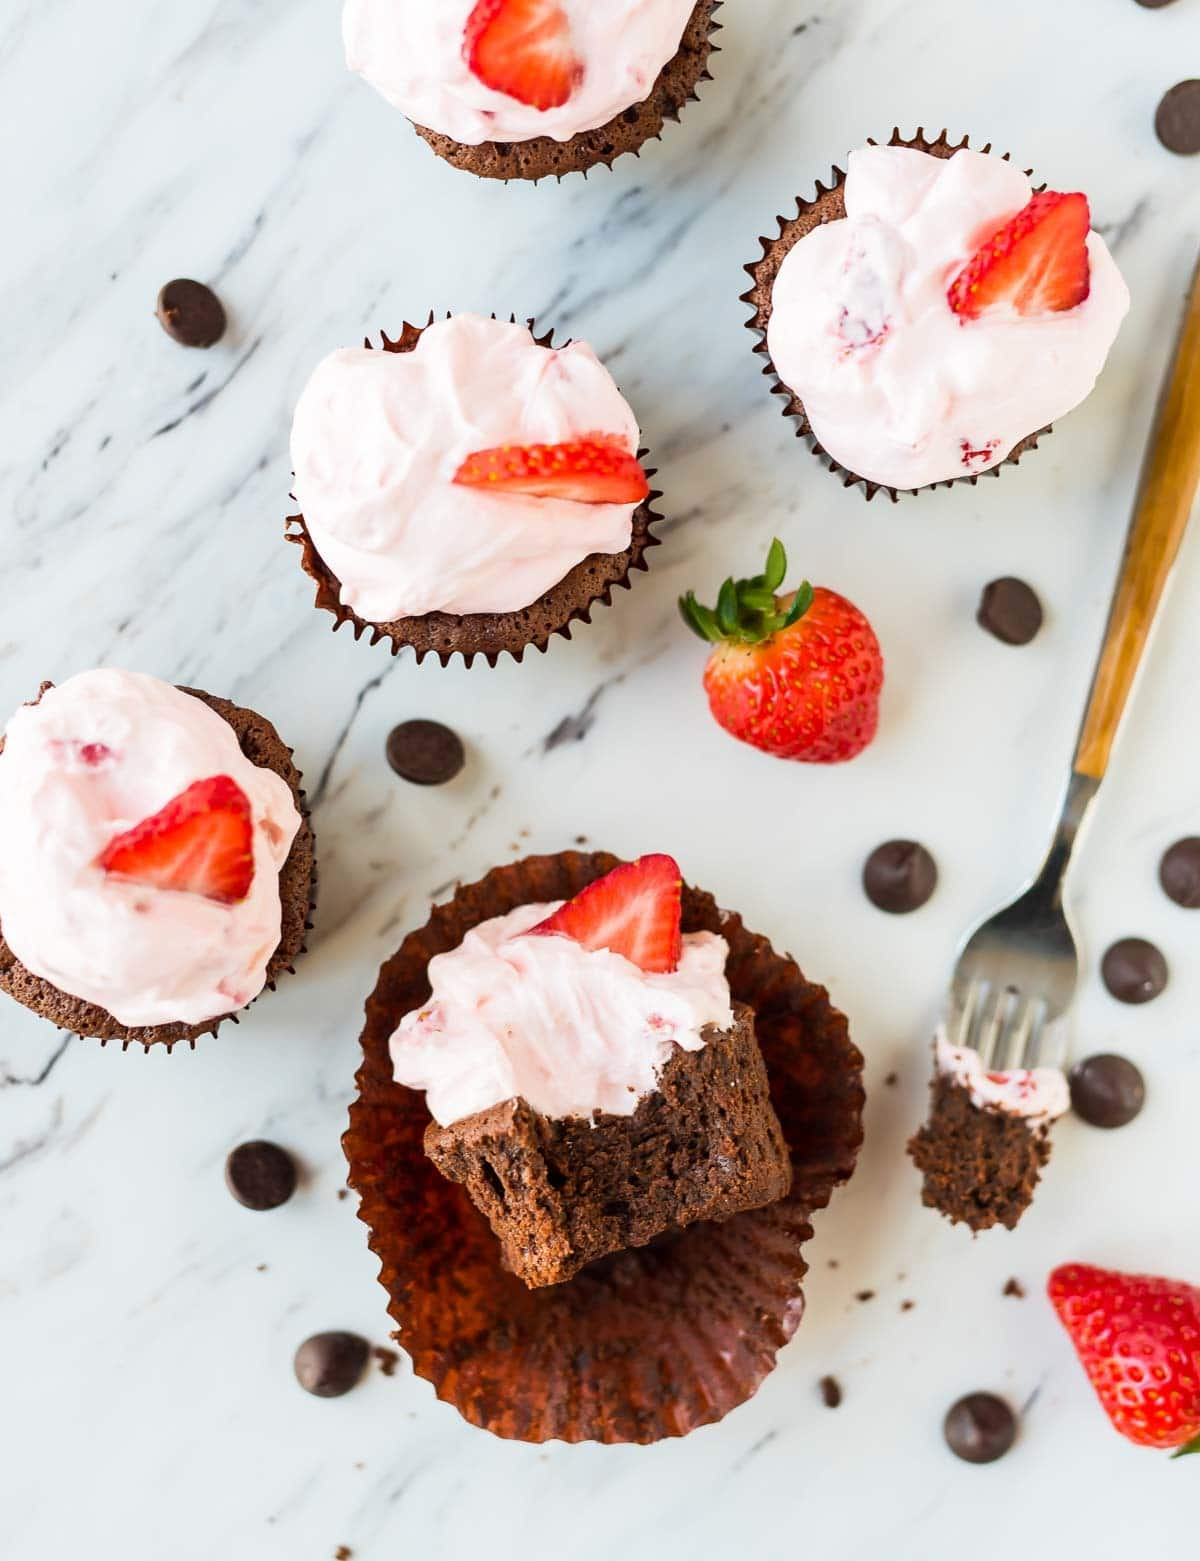 Chocolate Mousse Cupcakes with fresh strawberry cream cheese frosting. Easy gluten free dessert! Recipe at wellplated.com | @wellplated